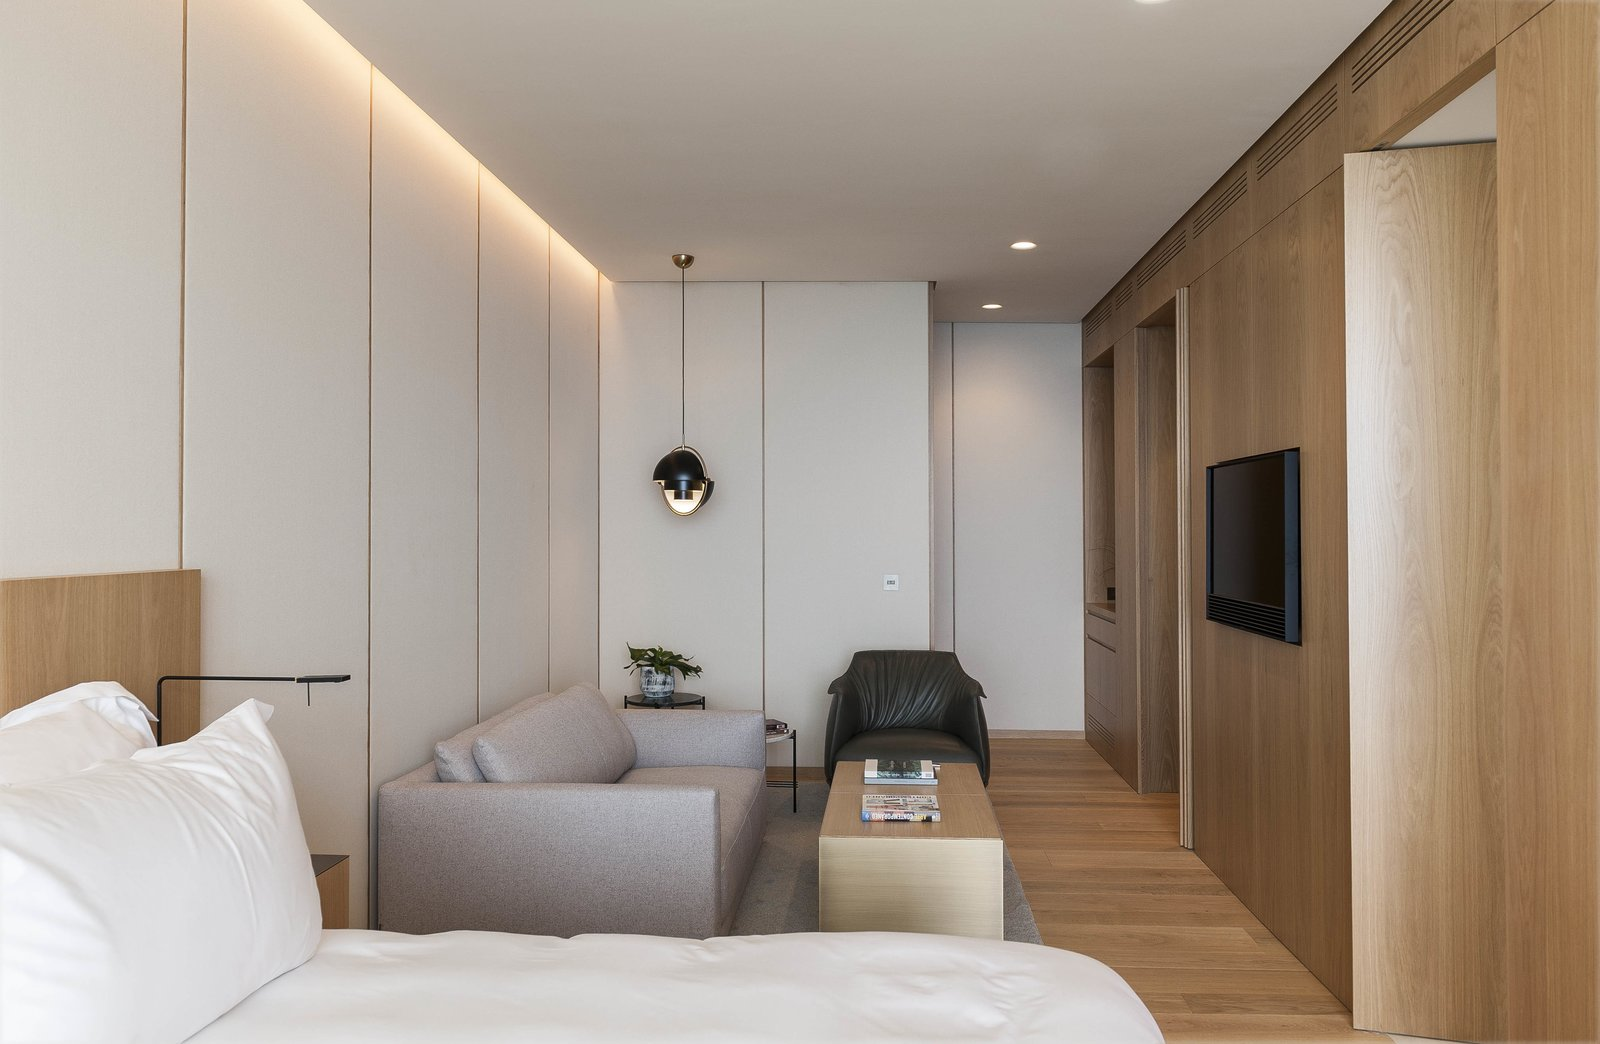 Bedroom, Chair, Bed, Pendant Lighting, Light Hardwood Floor, Table Lighting, Lamps, and Night Stands The warmth of the natural materials  Photo 9 of 13 in Spain's Basque Coast Gets a New Modern Hotel With a Michelin-Starred Restaurant